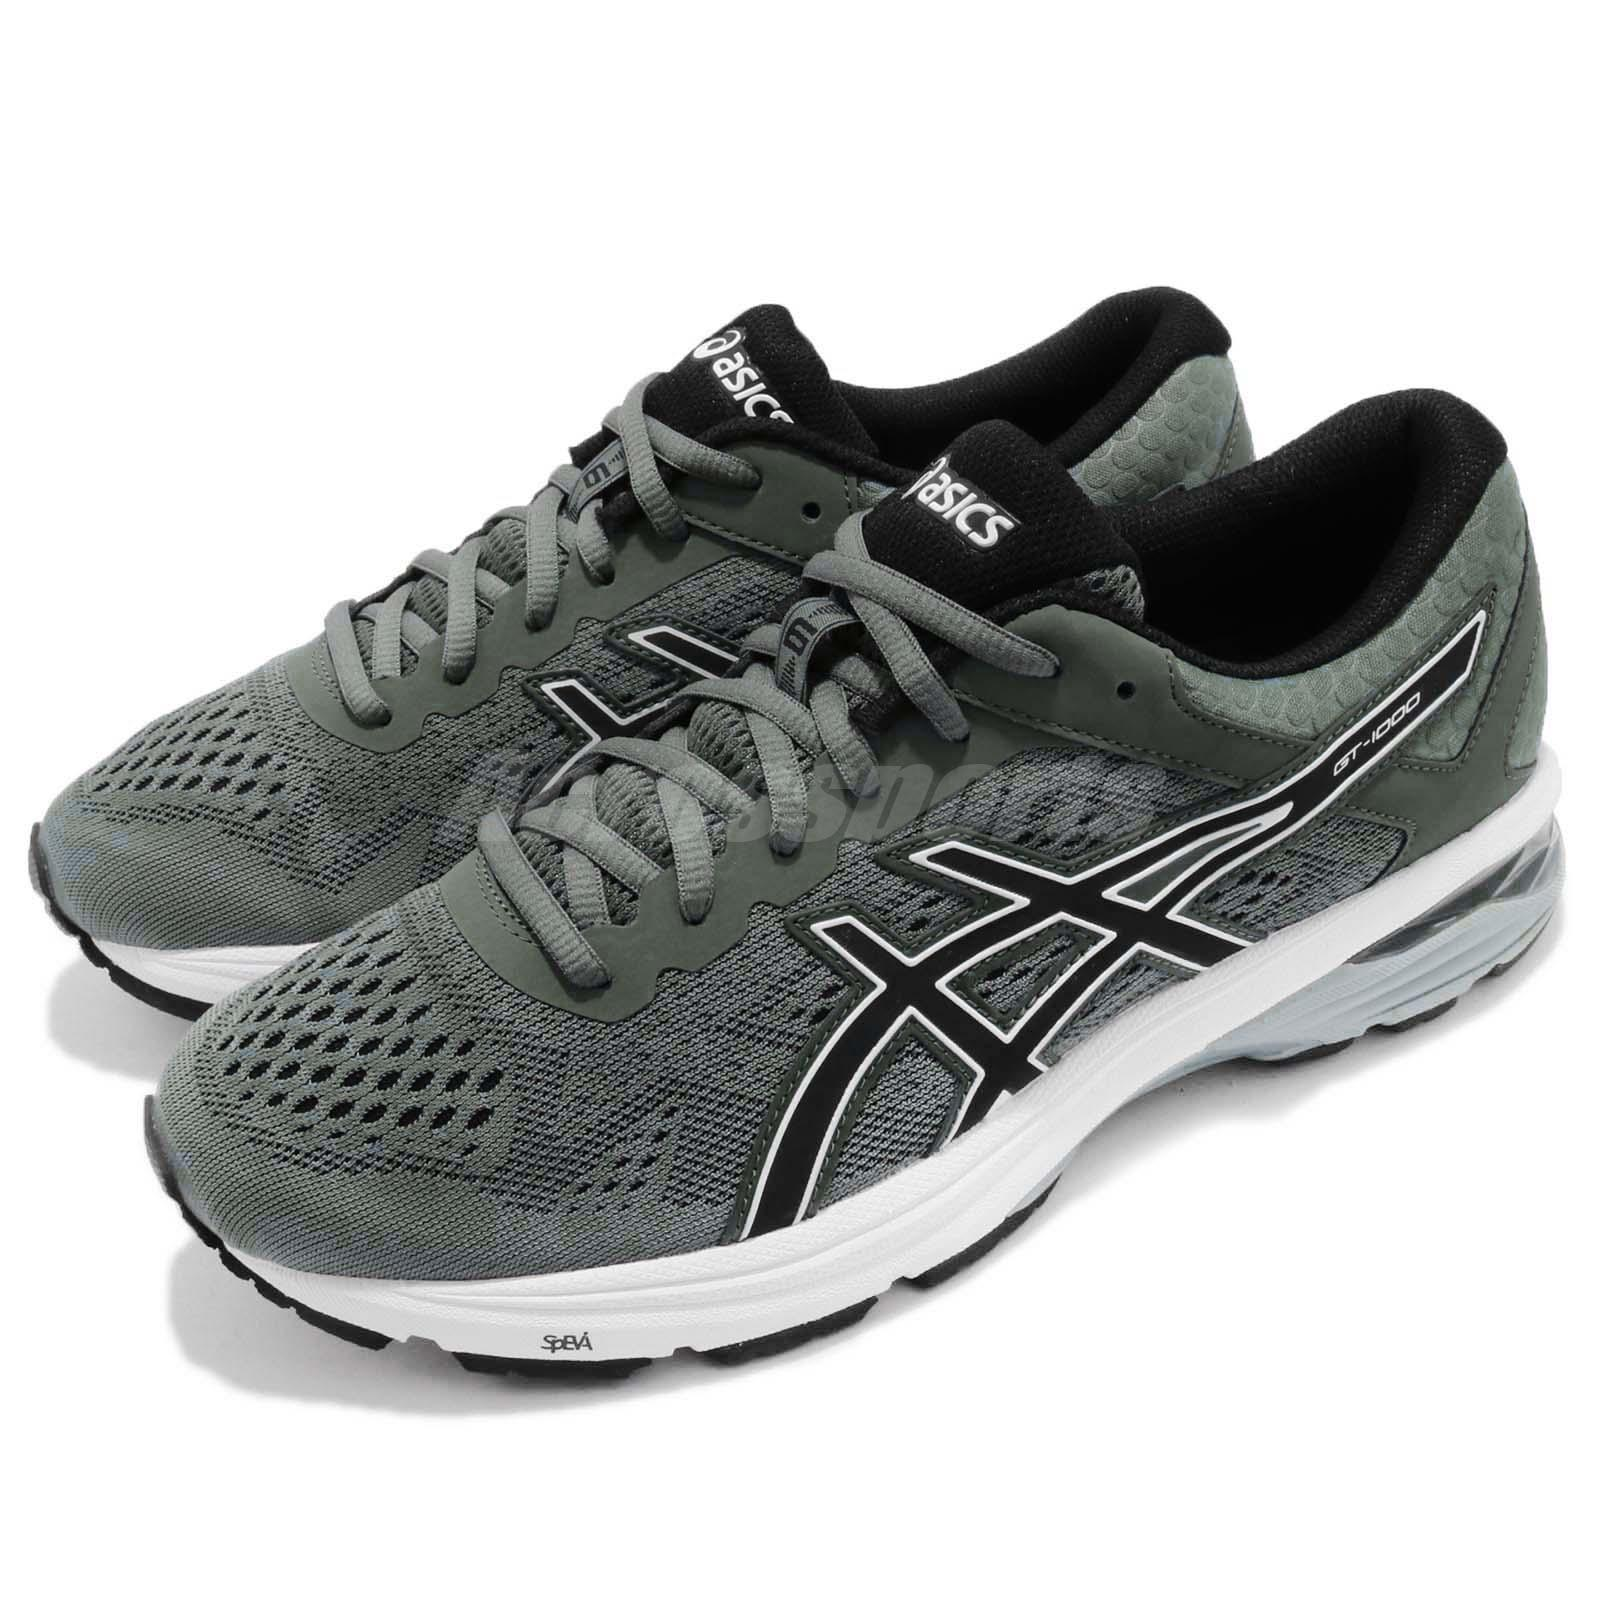 Details about Asics GT 1000 6 VI Dark Forest Black Men Running Shoes Trainers T7A4N 8290